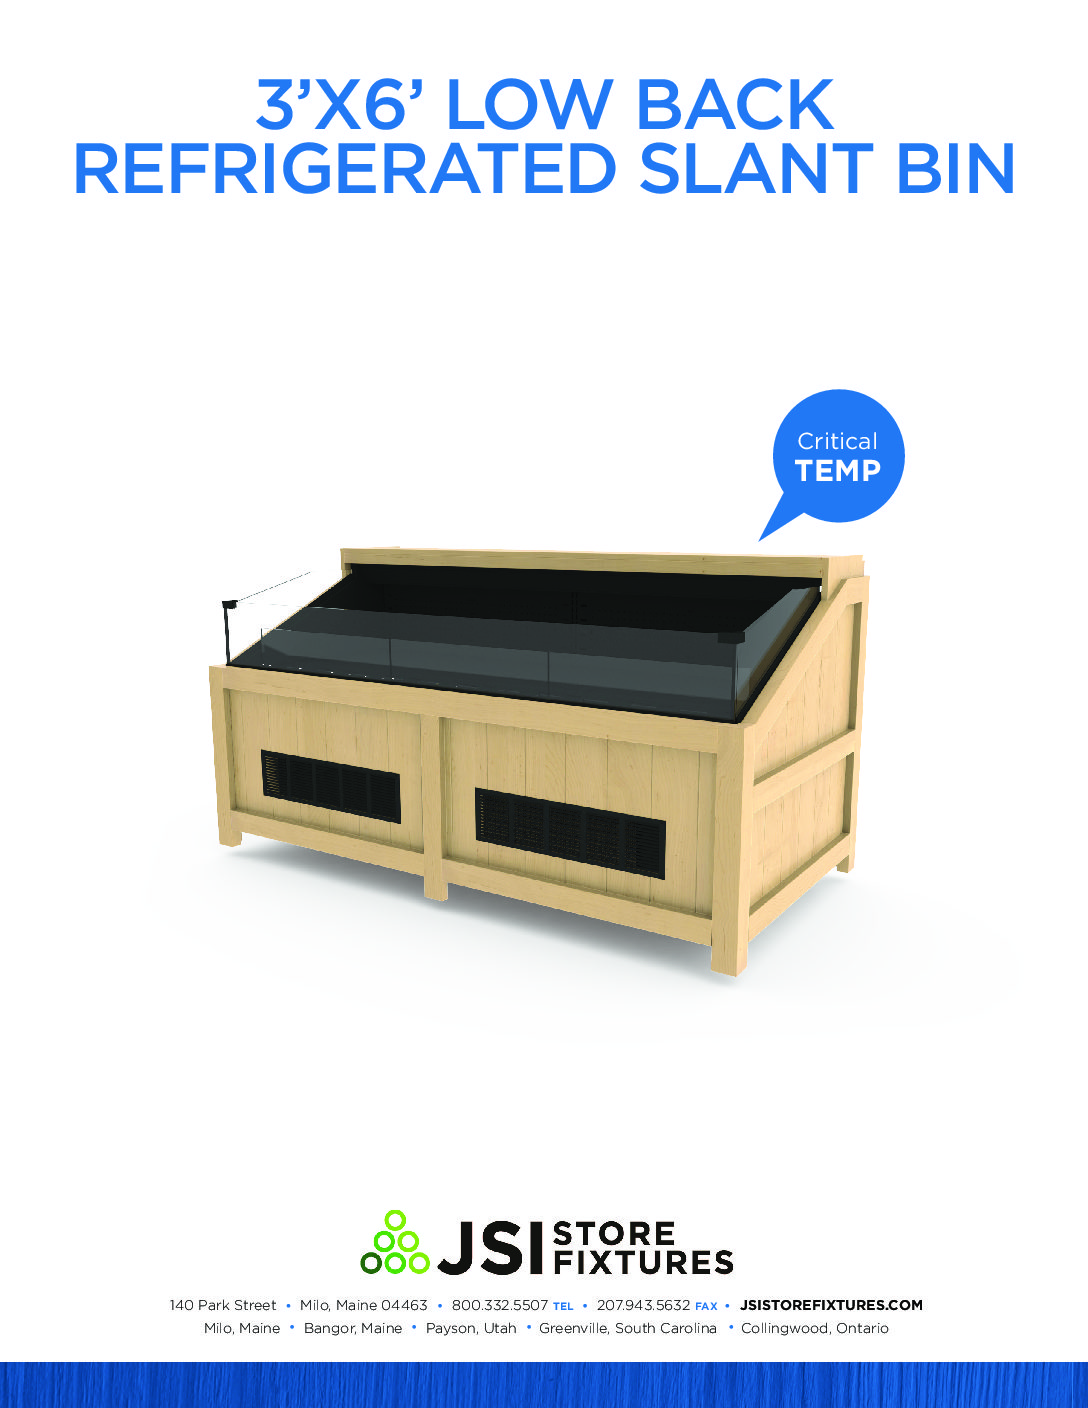 3'x6' Low Back Refrigerated Slant Bin Spec Sheet